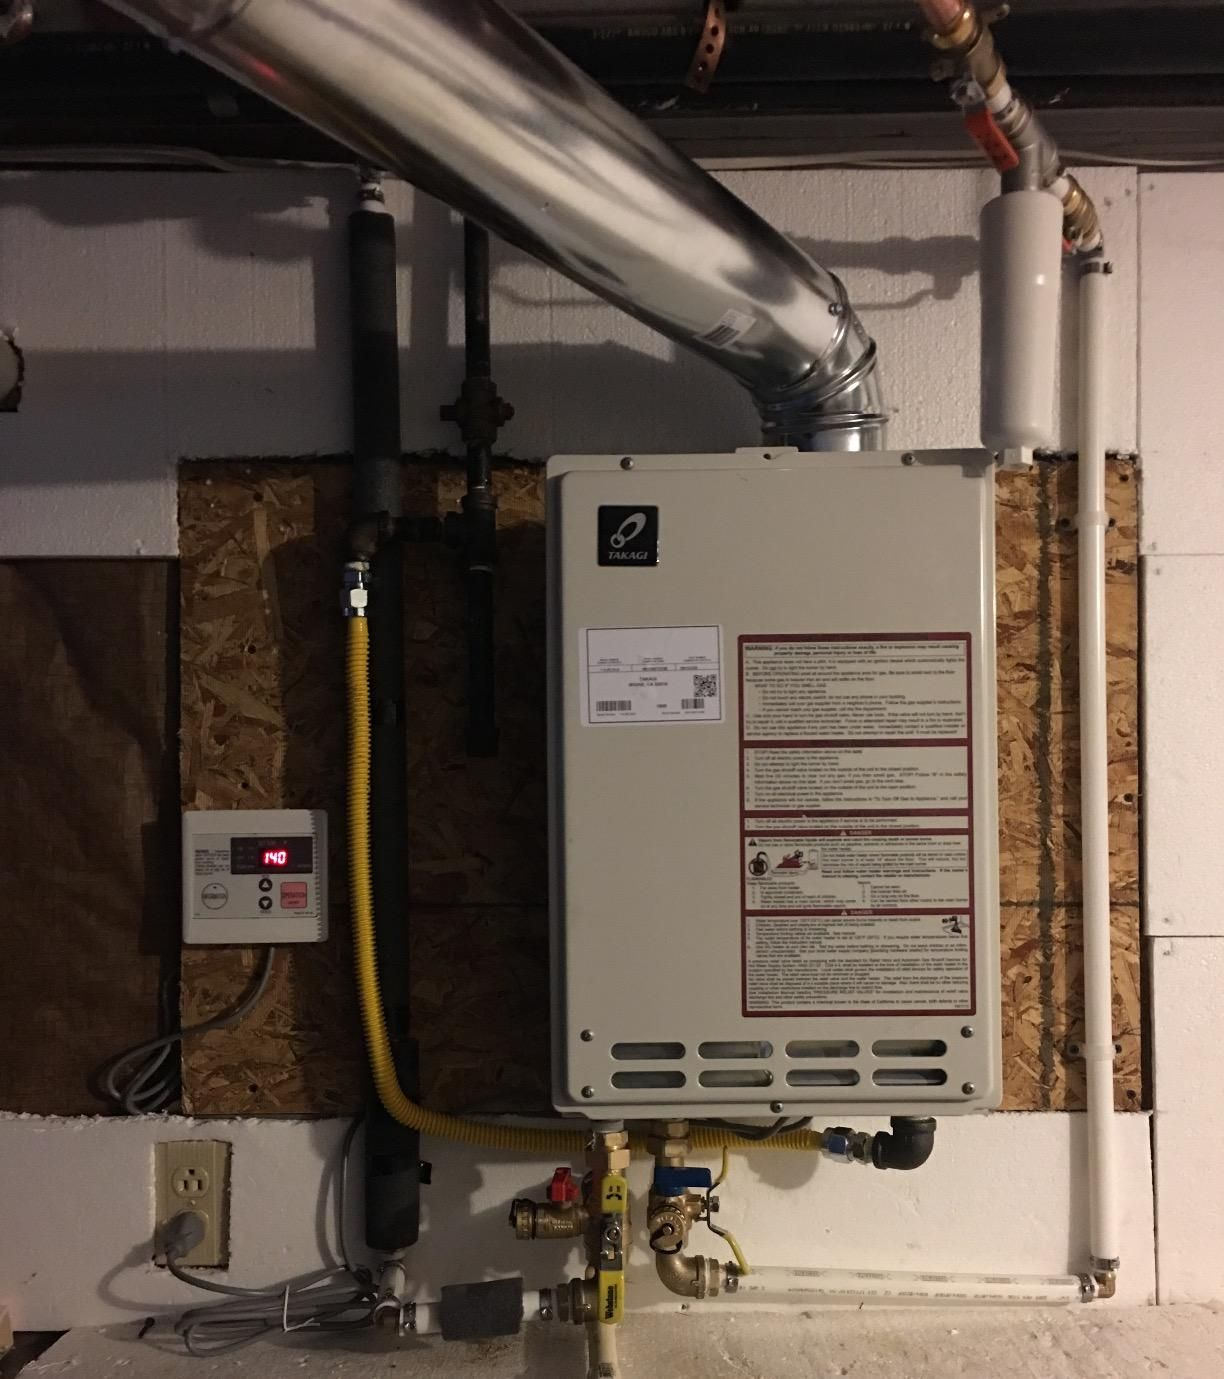 Best Tankless Water Heater Reviews In 2020 Tankless Water Heater Gas Water Heating Systems Tankless Water Heater